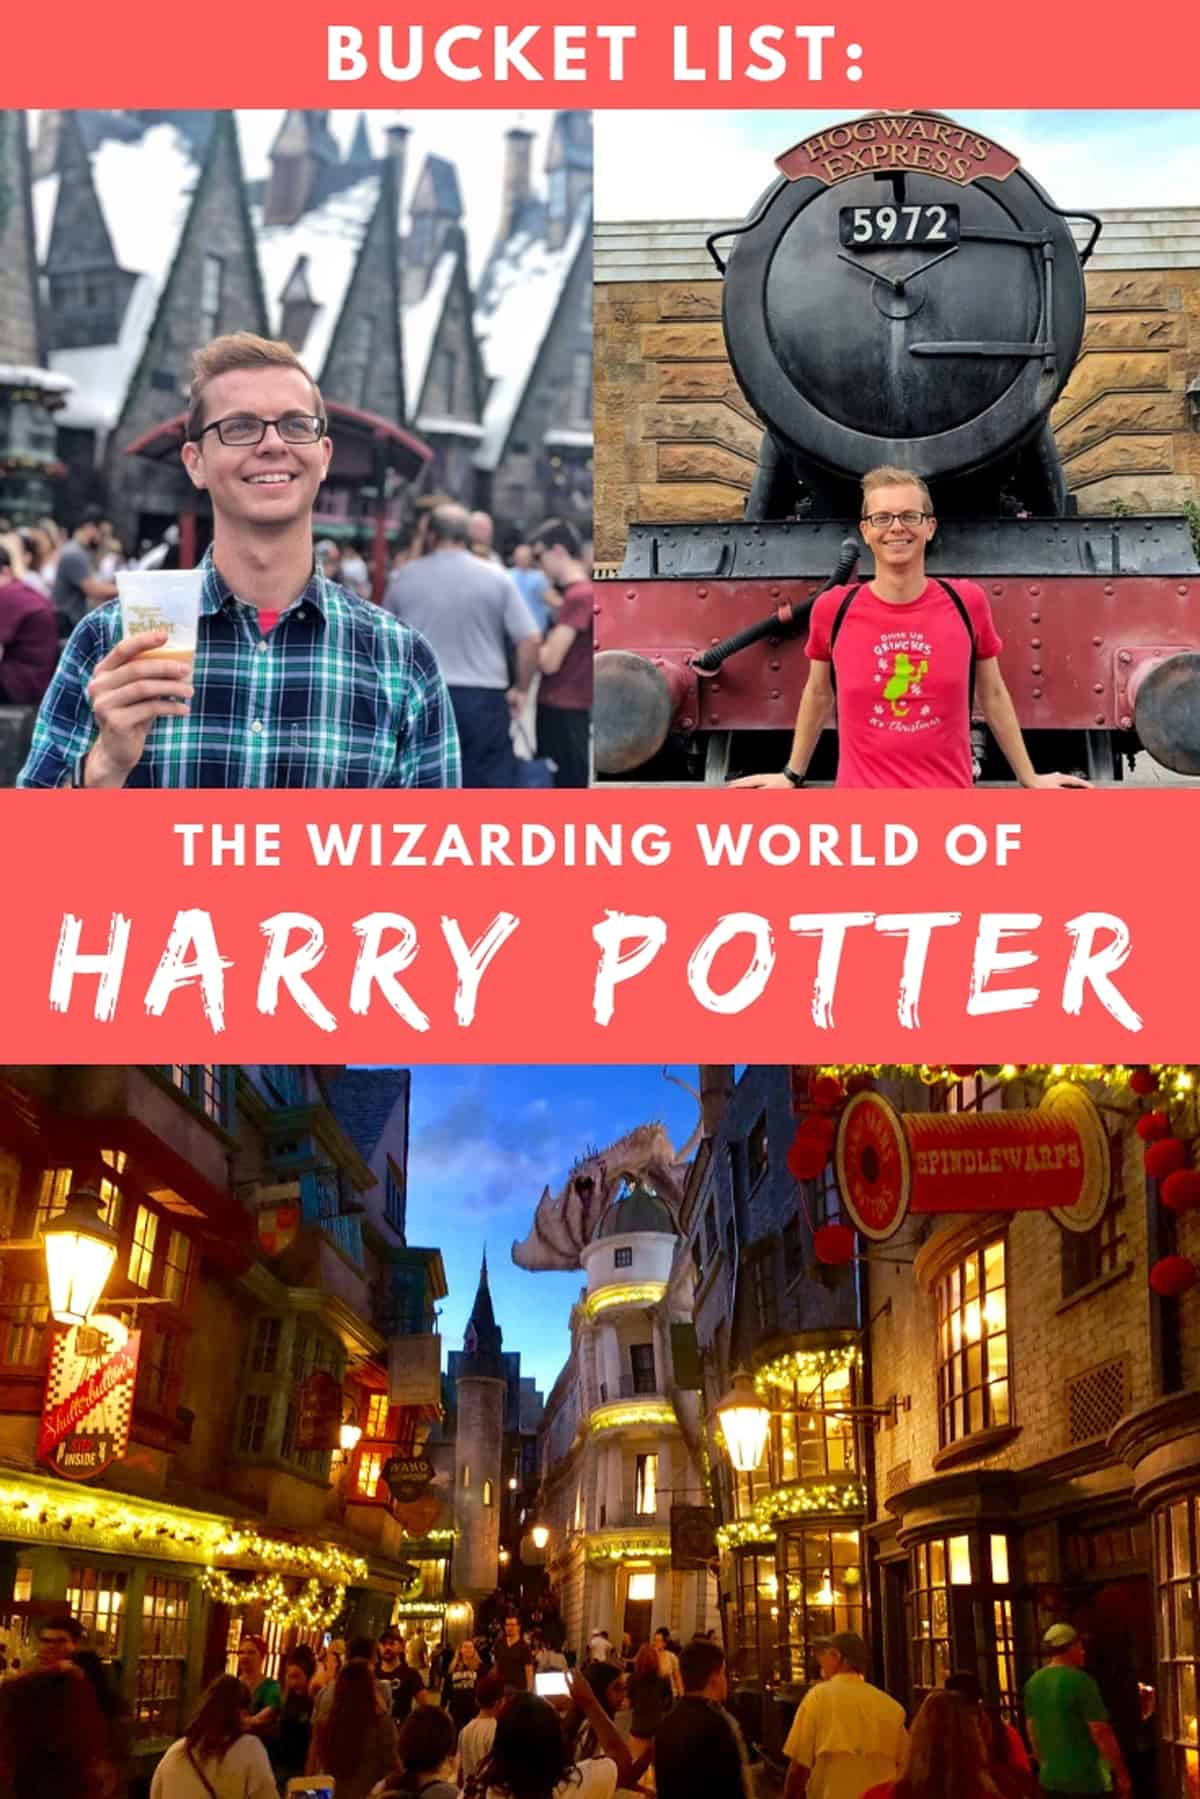 Harry Potter Bucket List: Visit Wizarding World at Universal Orlando Resort